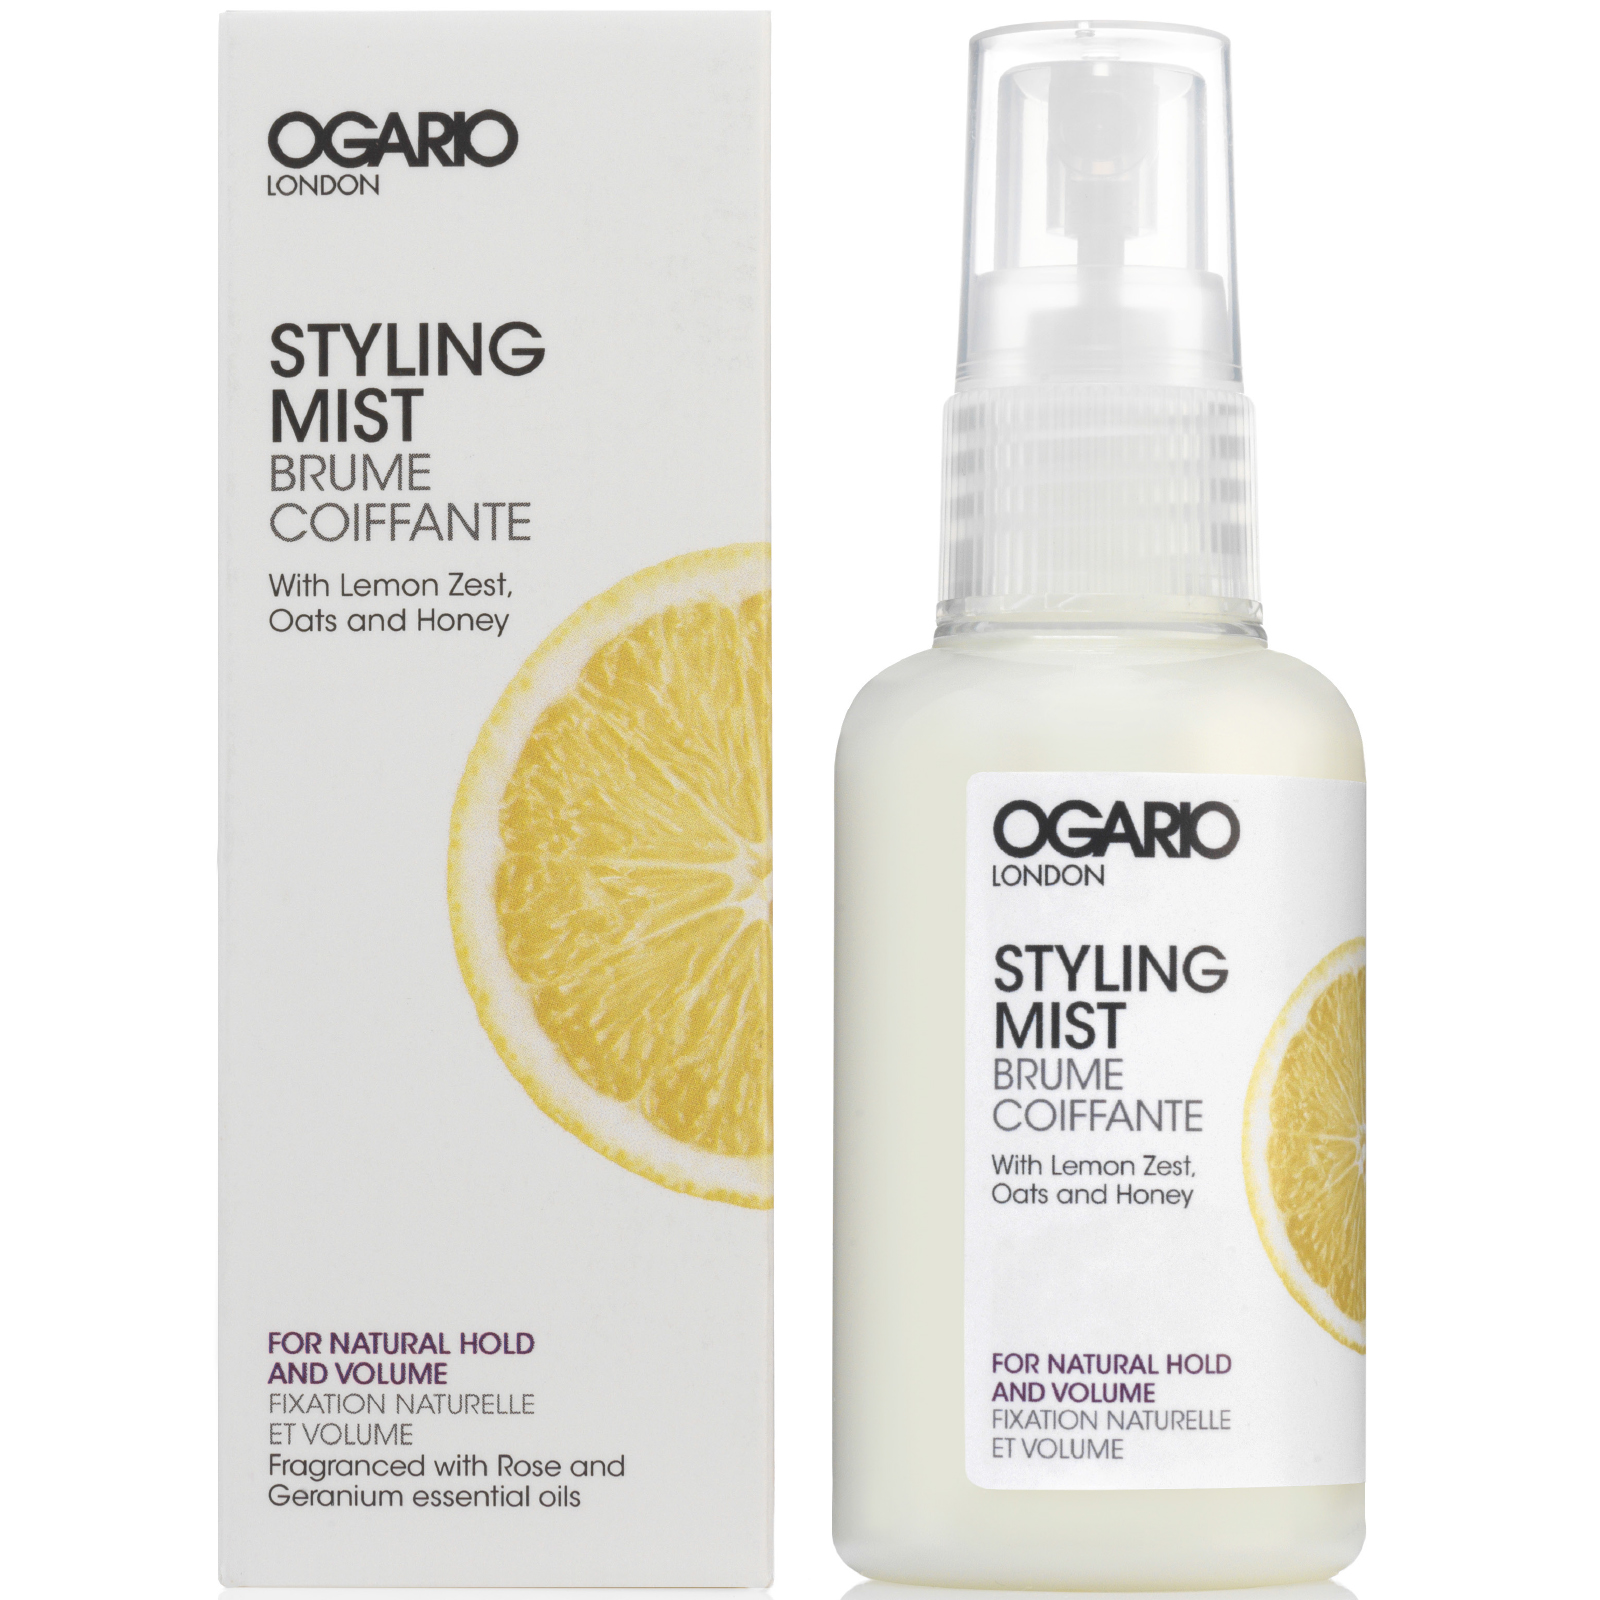 Stying Mist with argan oil to treat hair; best for adding volume